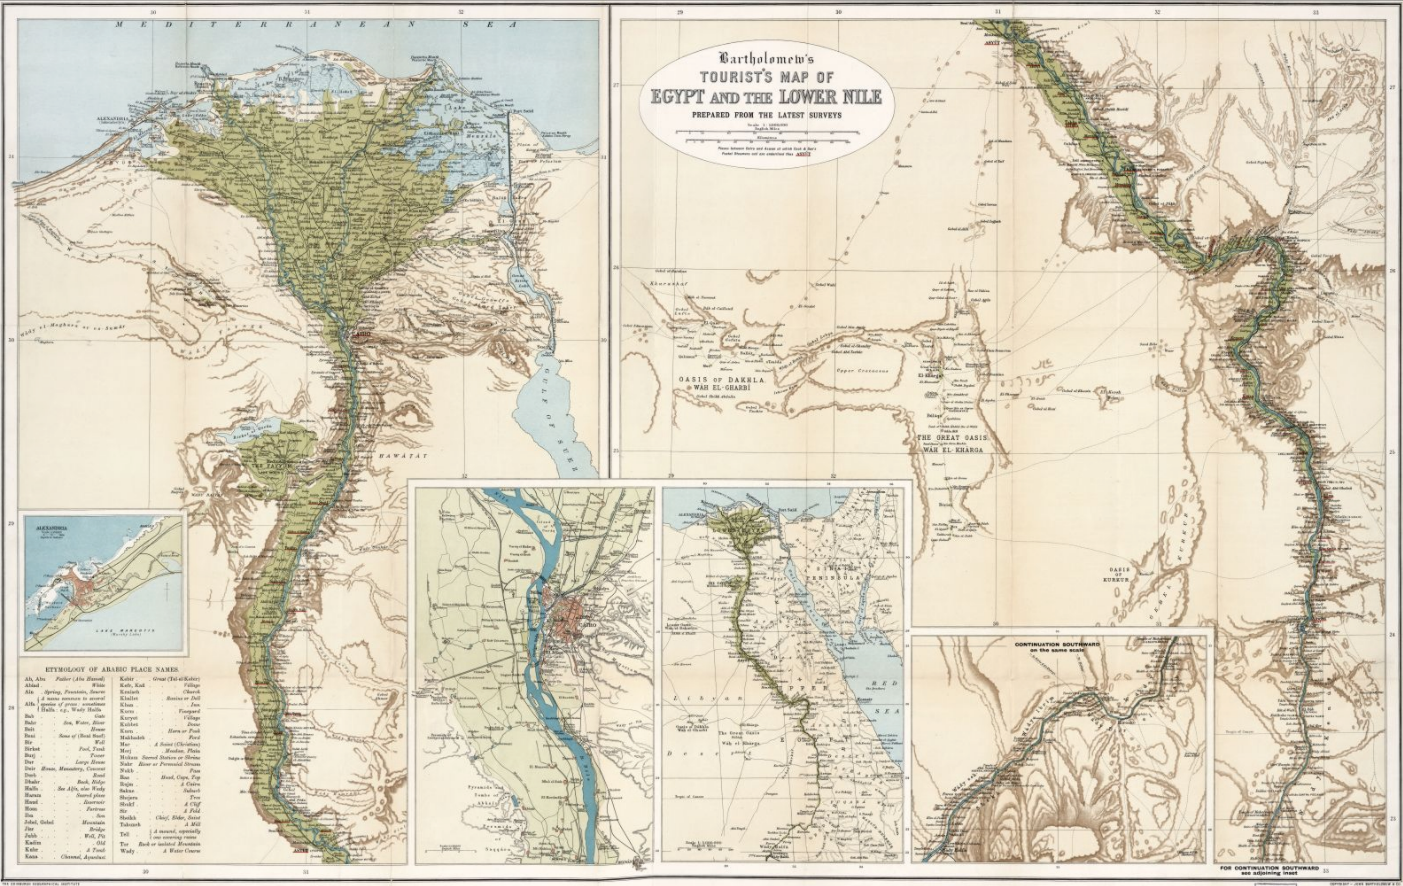 Tourists Map Of Egypt And The Lower Nile Via Big Maps Blog Free Large File Download